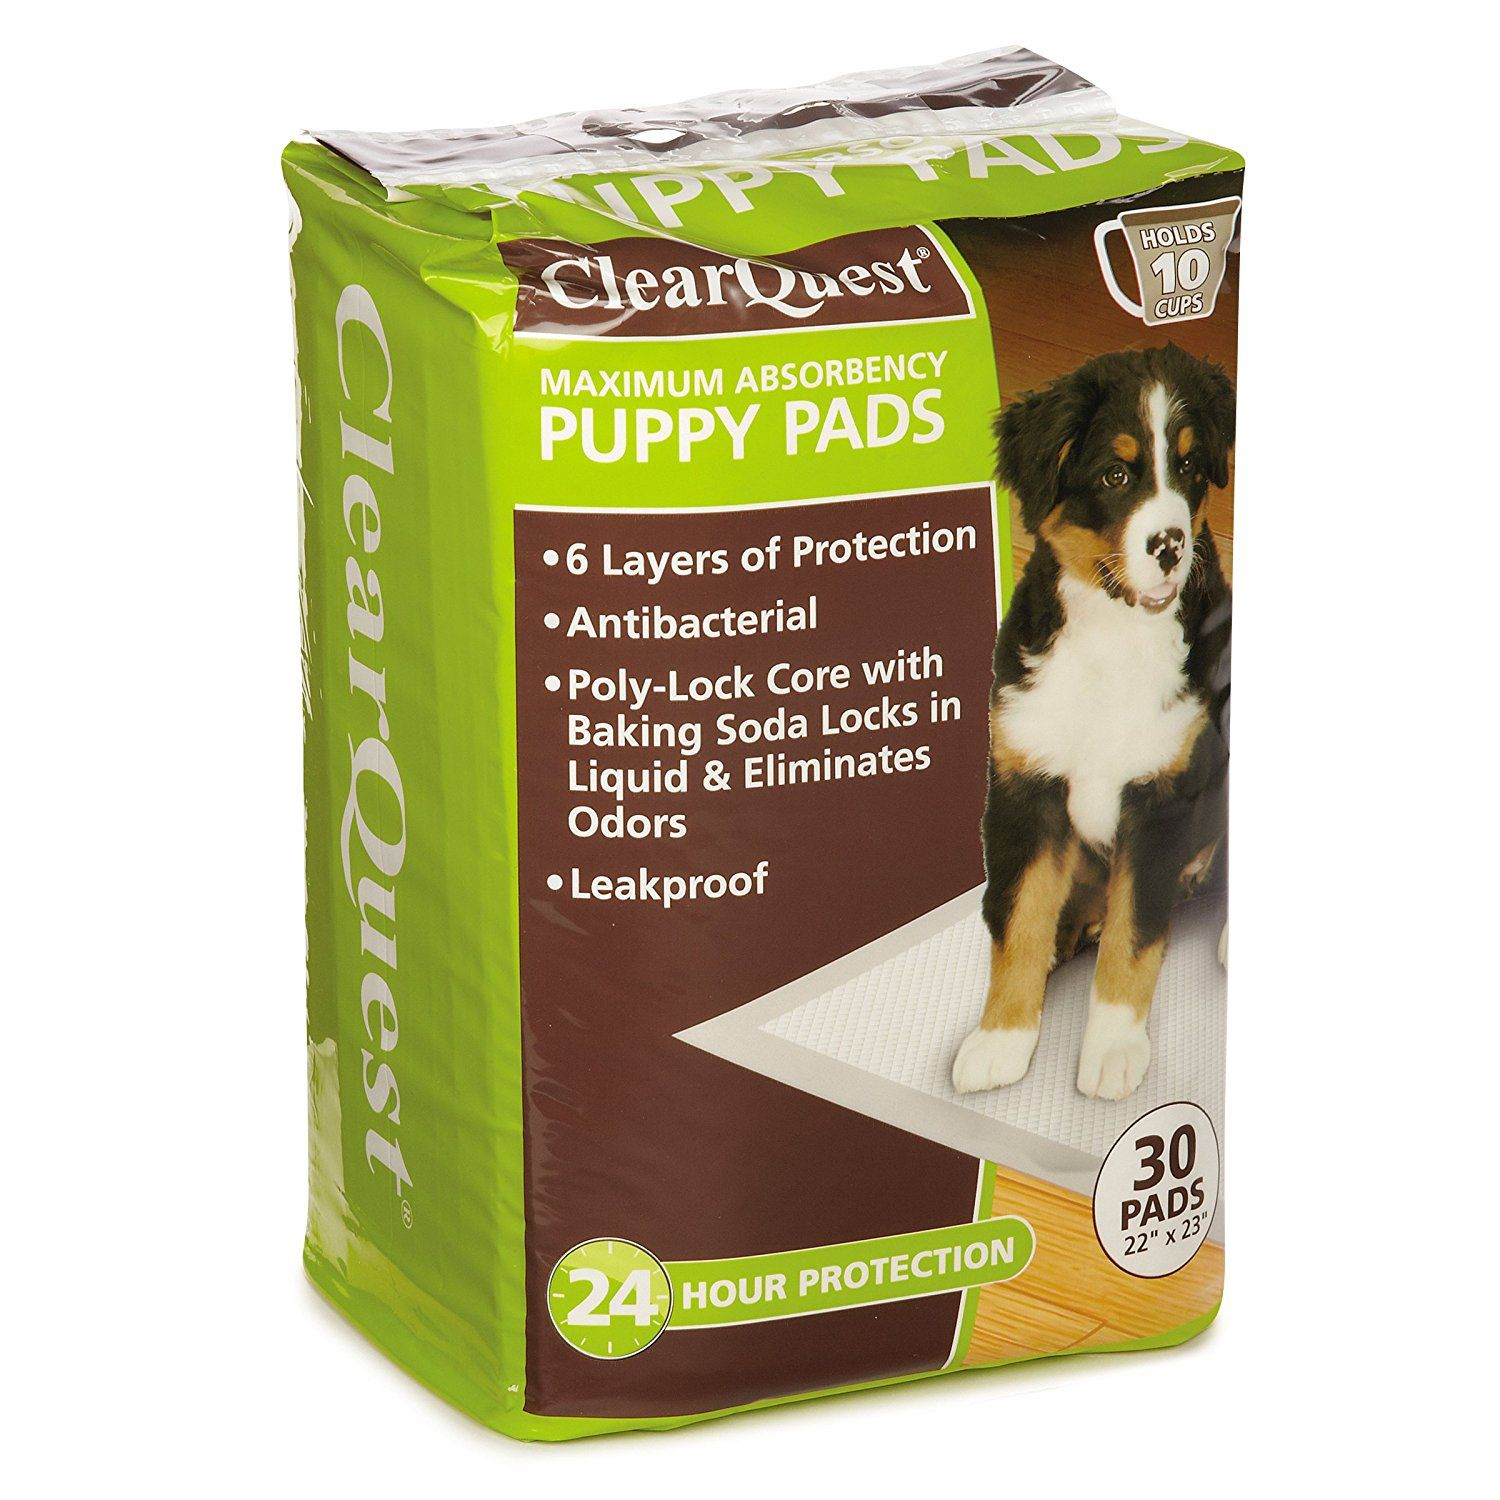 Clearquest Maximum Absorbency Puppy Pads Anti Microbial Hold 10